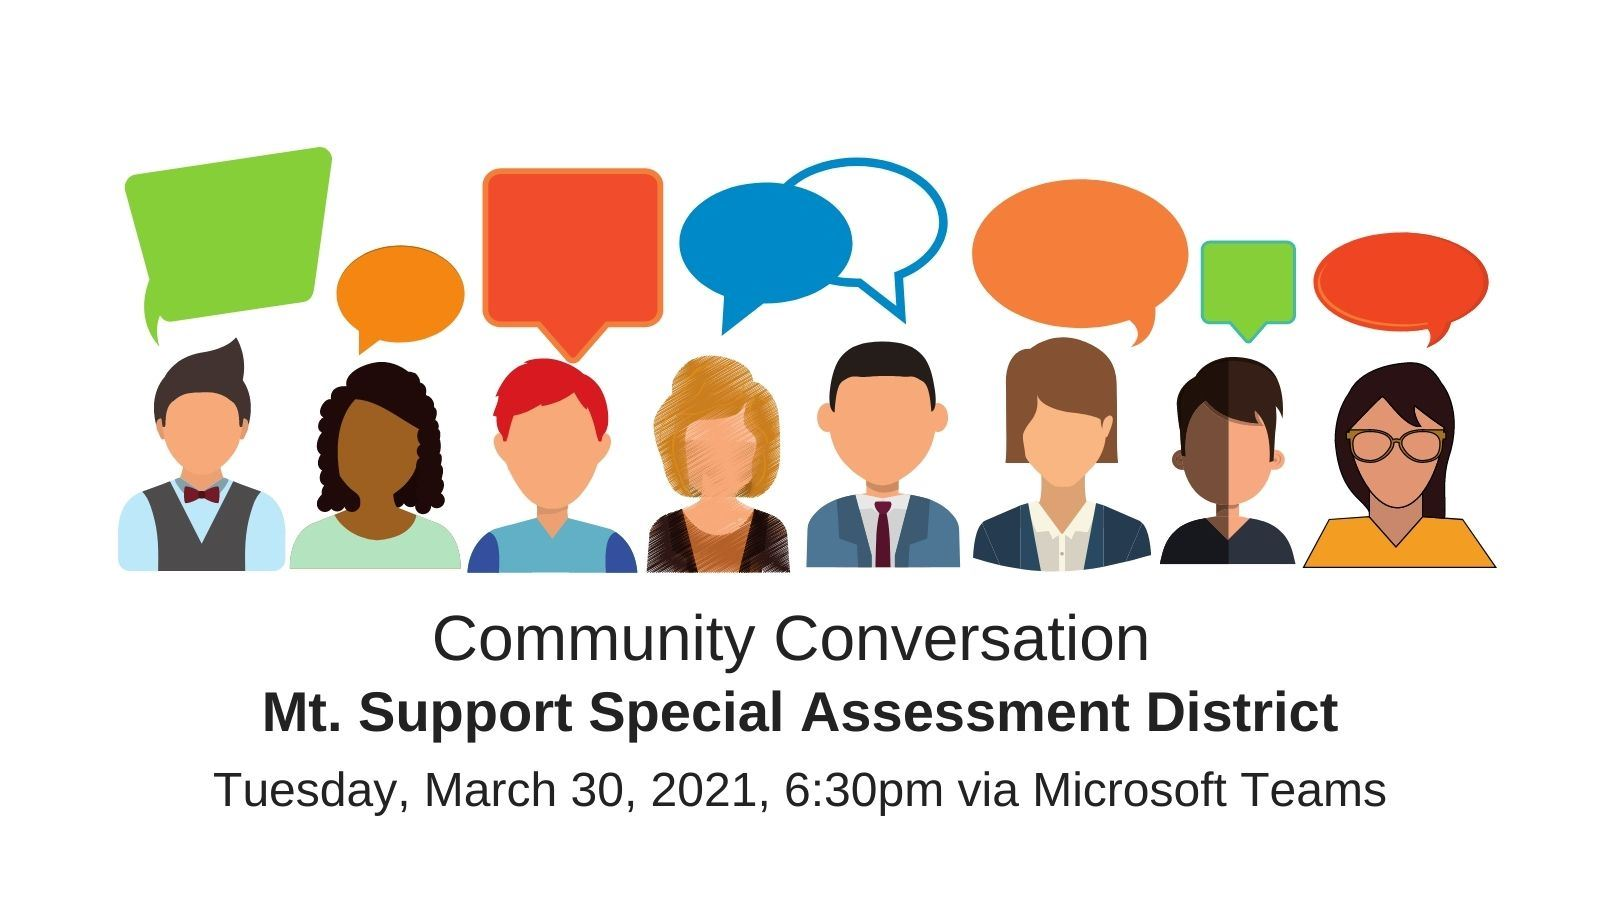 Community Conversation Mt. Support Special Assessment District March 30, 2021 at 6:30pm